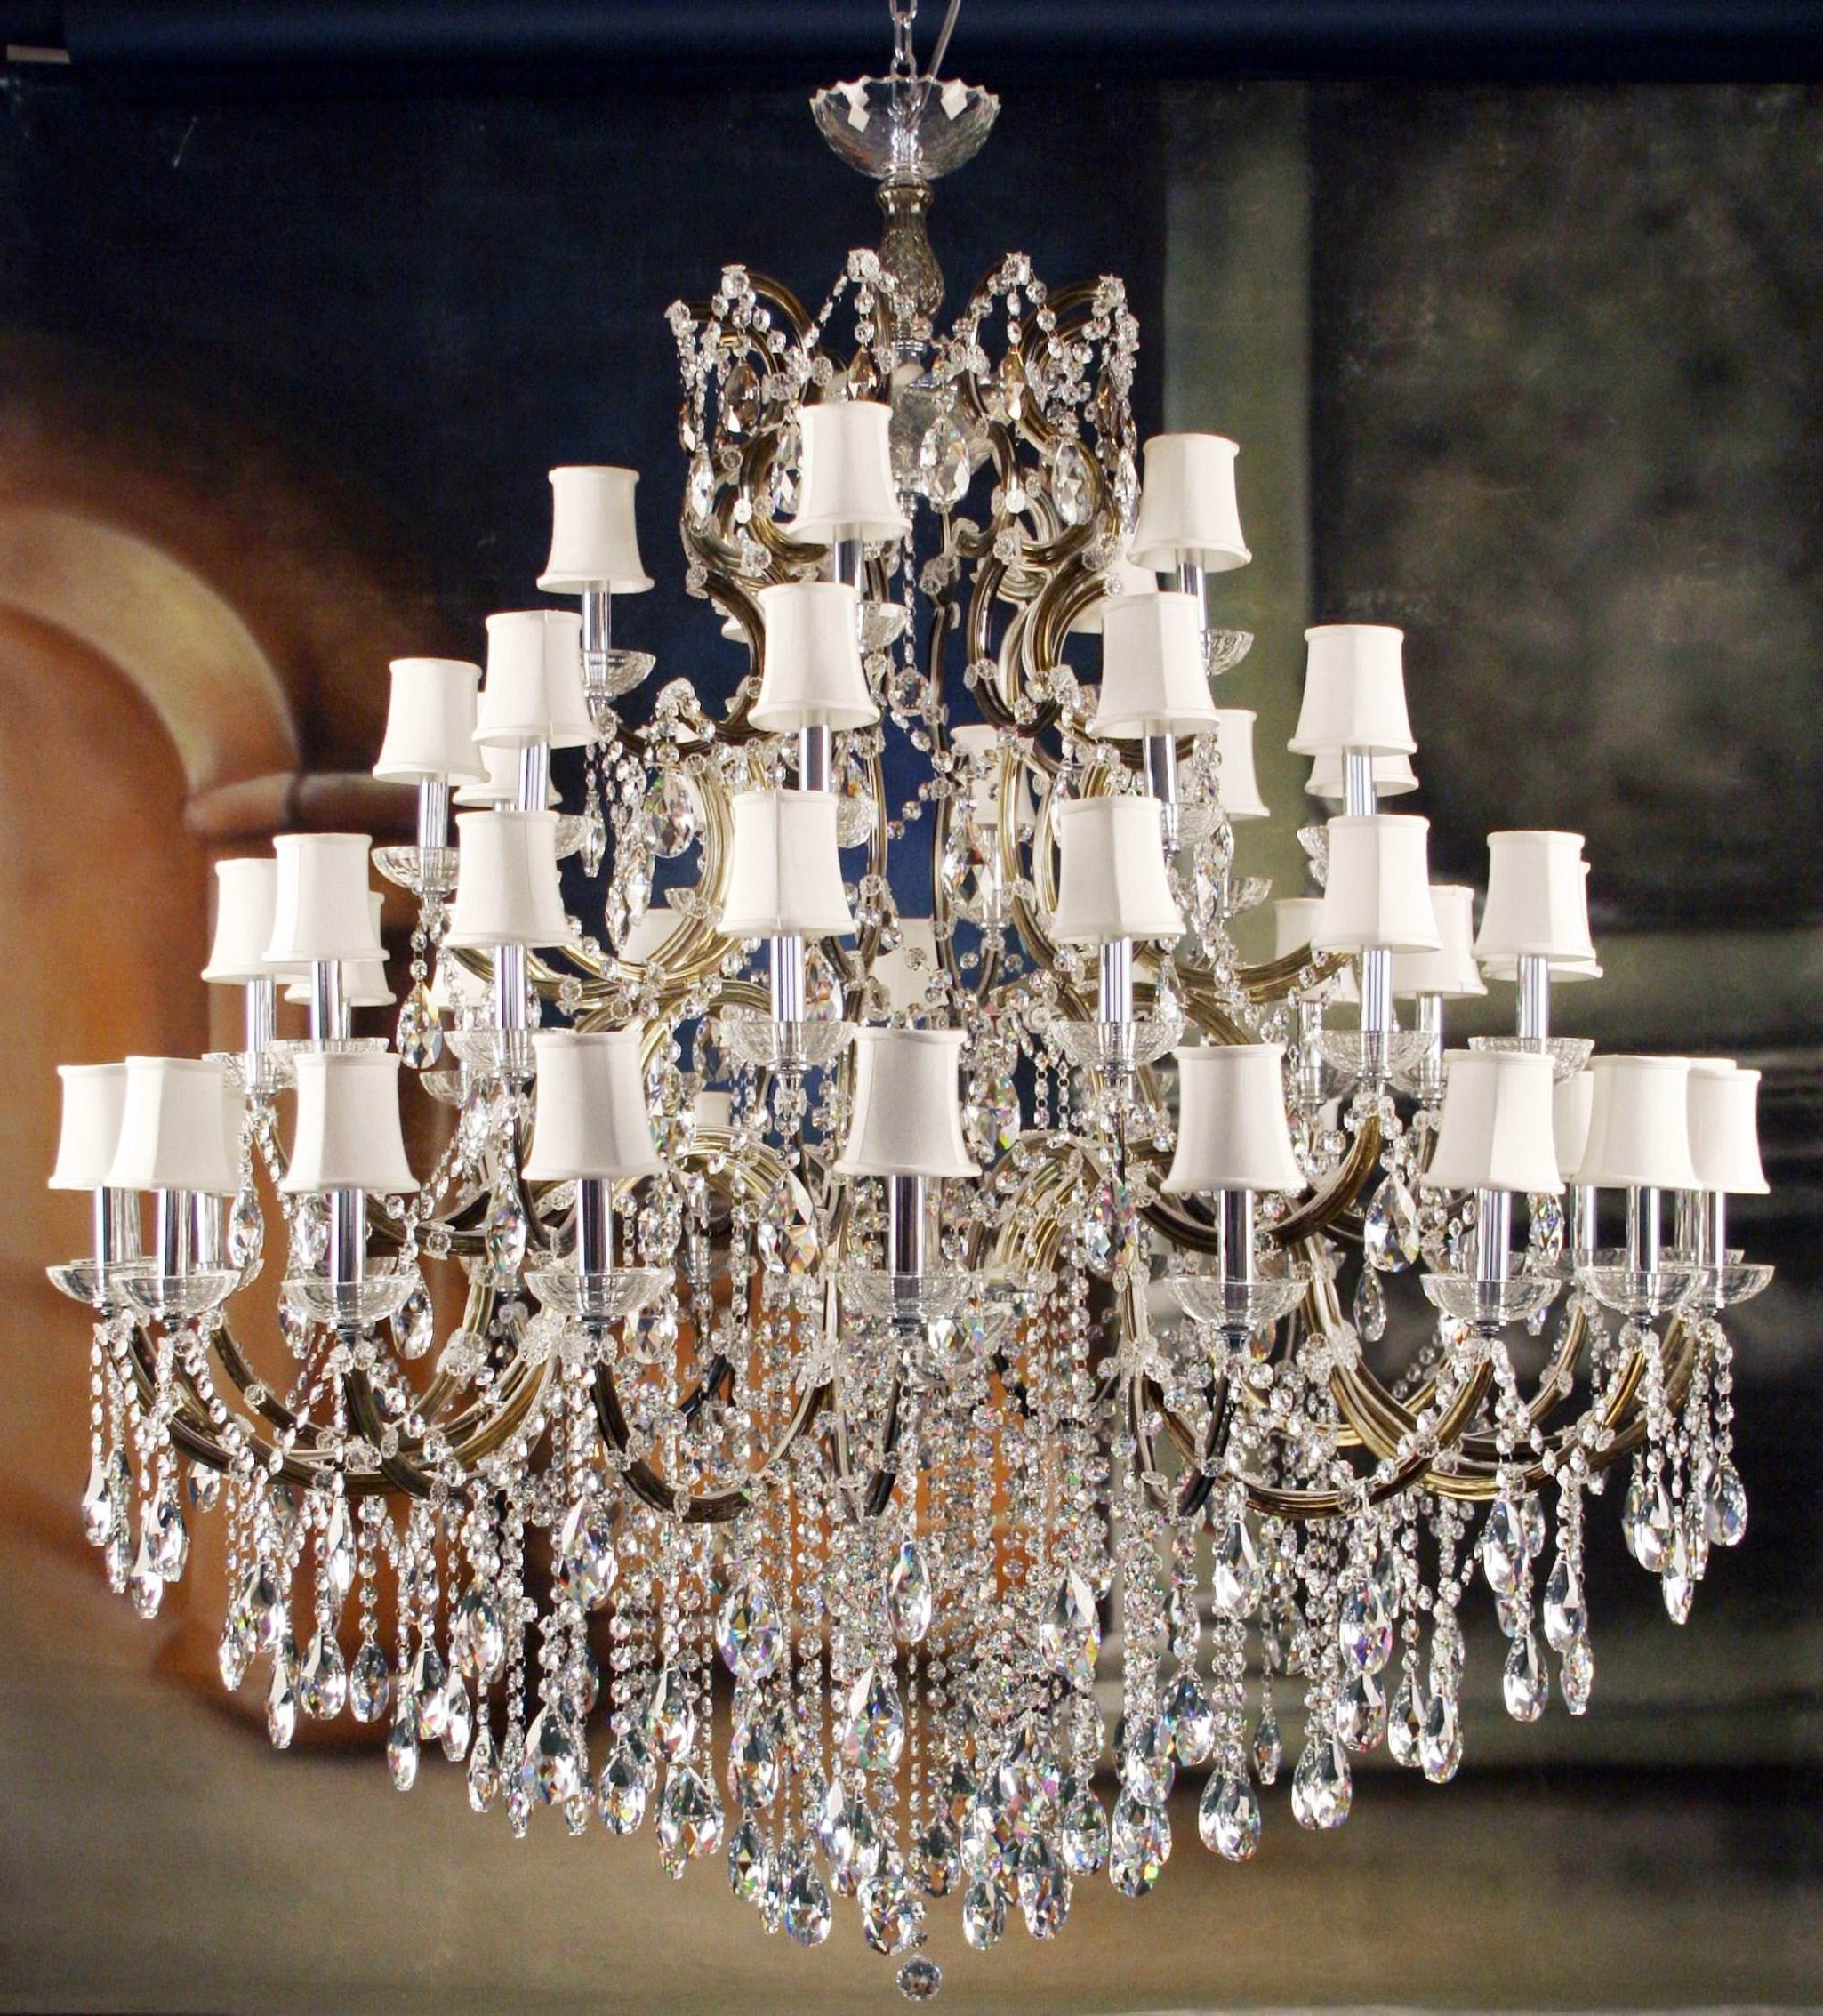 Light : Fancy Living Room High Quality Crystal Chandeliers For Home Inside 2019 Expensive Chandeliers (View 12 of 20)